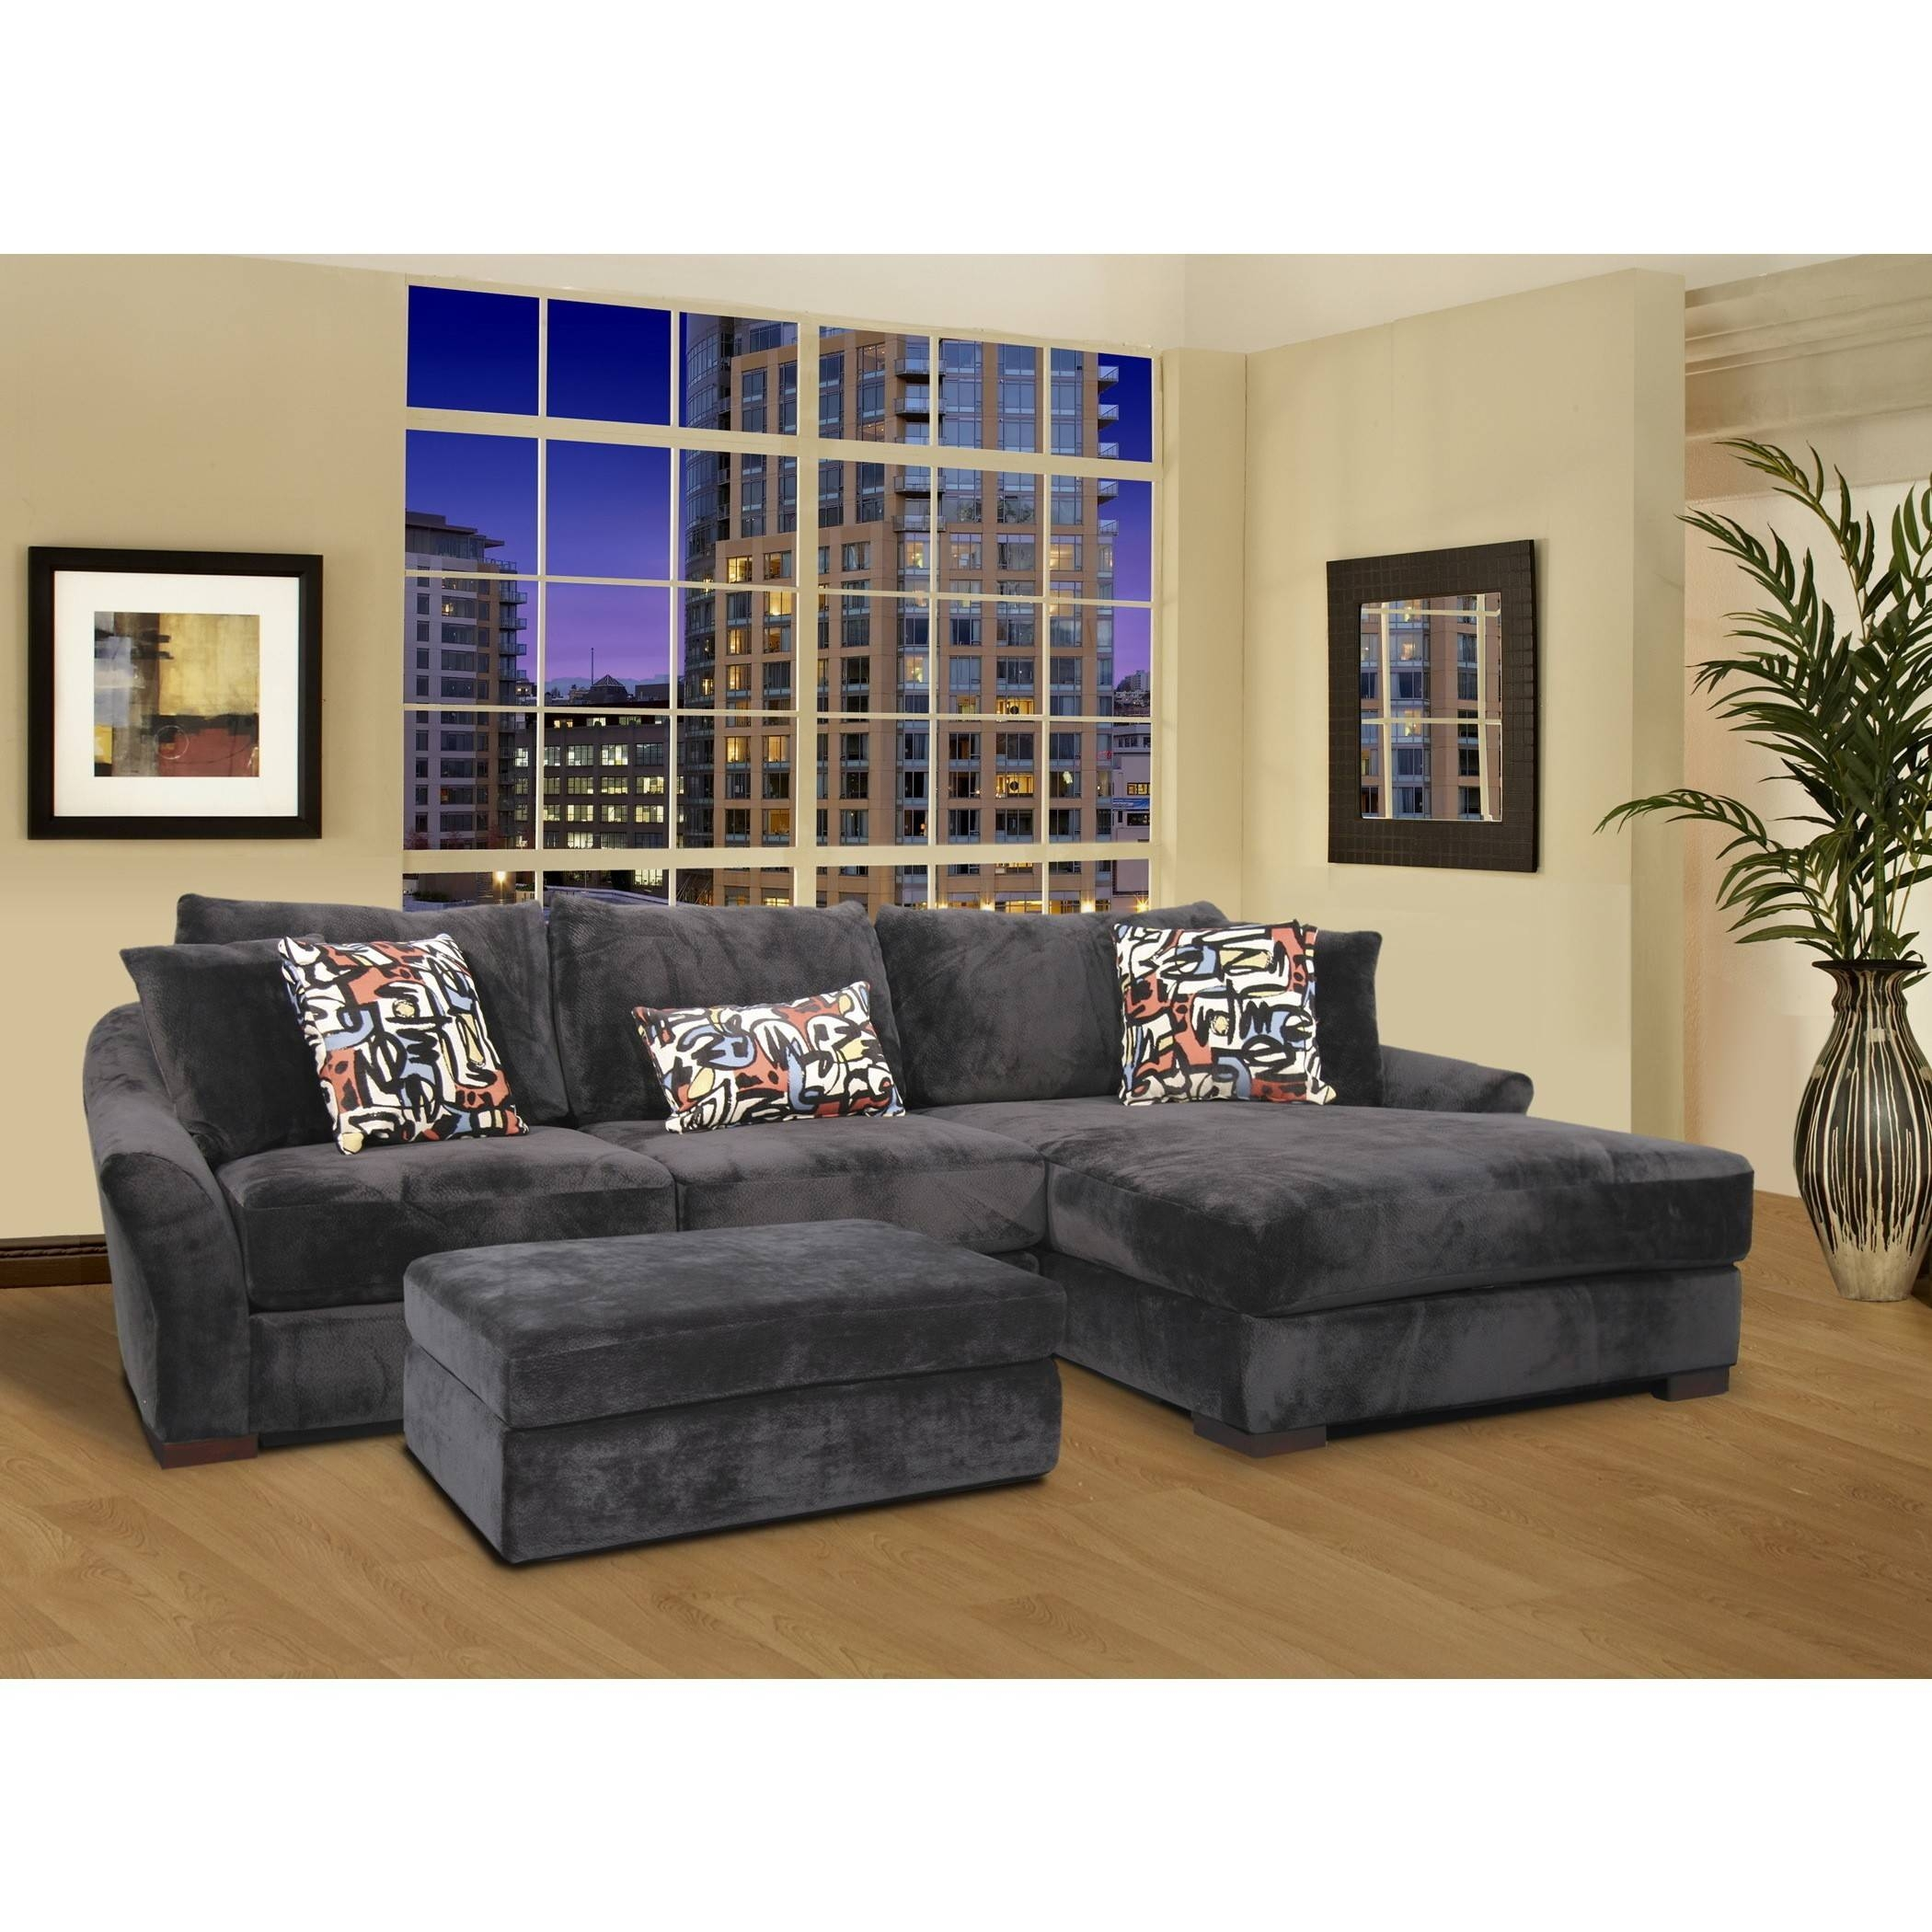 L Shape Gray Velvet Sectional Sleeper Sofa With Left Chaise Lounge with L Shaped Sectional Sleeper Sofa (Image 15 of 25)